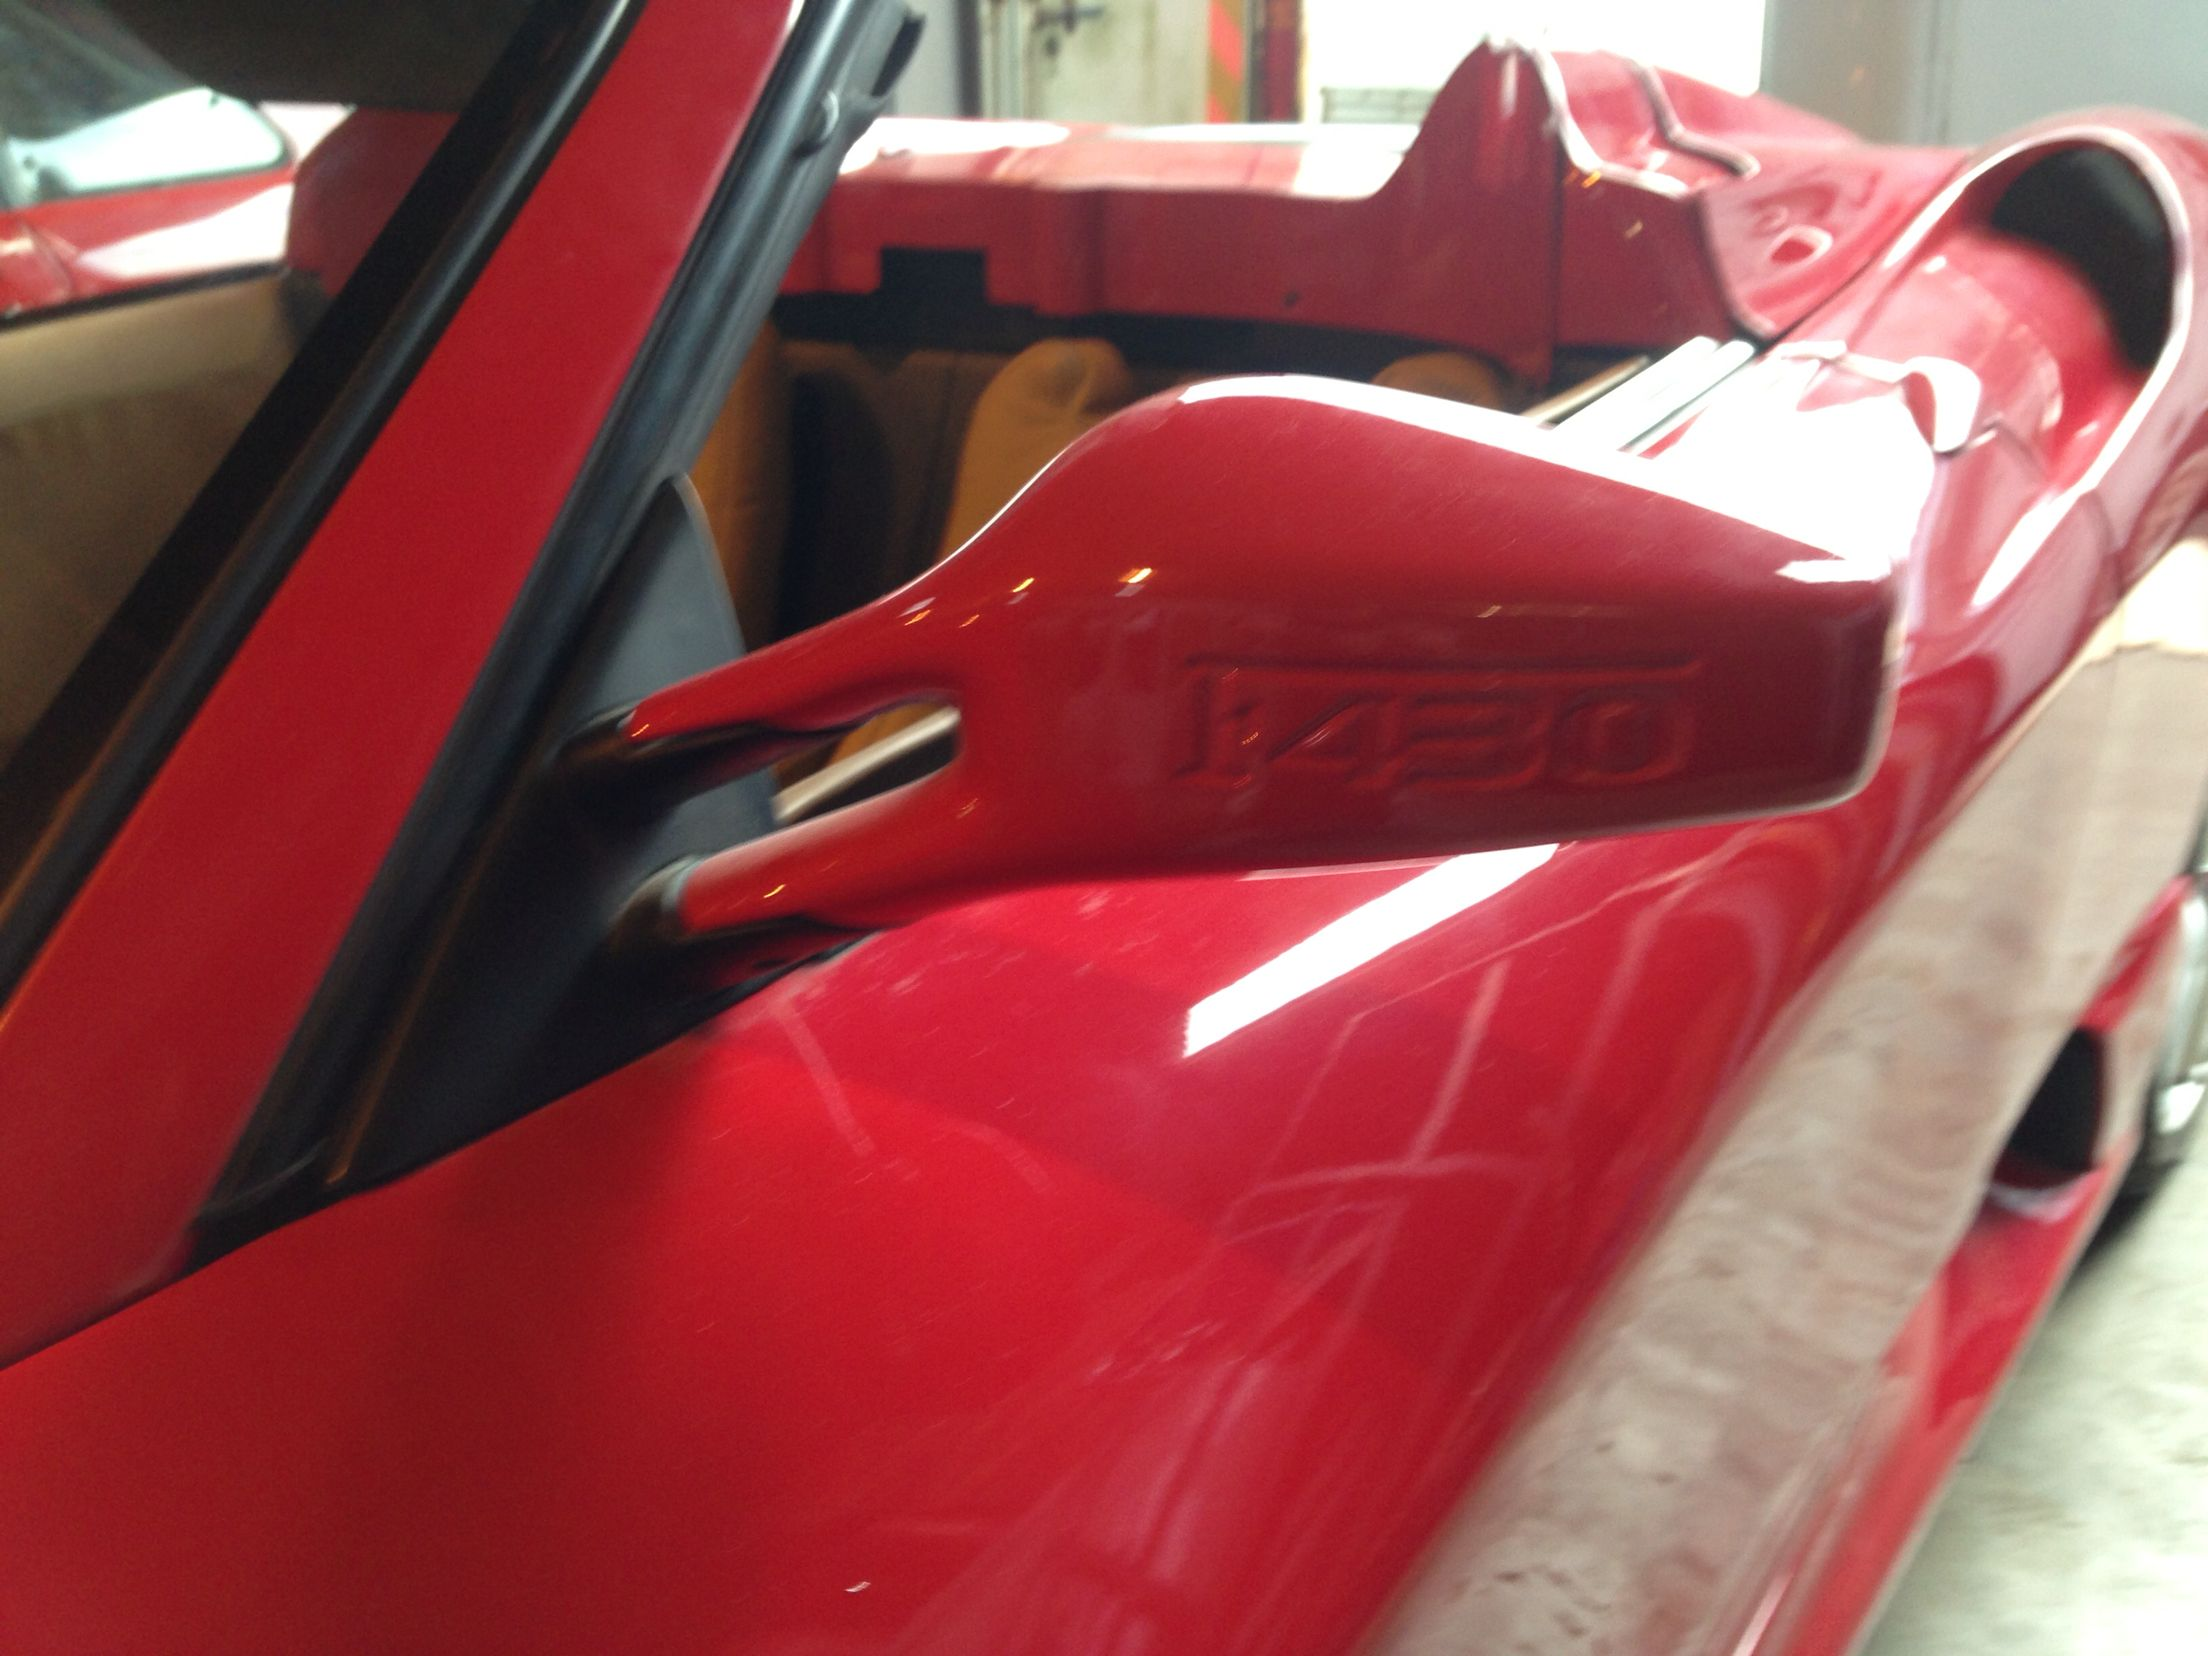 Plastic Injection Moulded Door Mirrors. Ferrari F430 Replica Based On Toyota  MR2 Roadster Built By